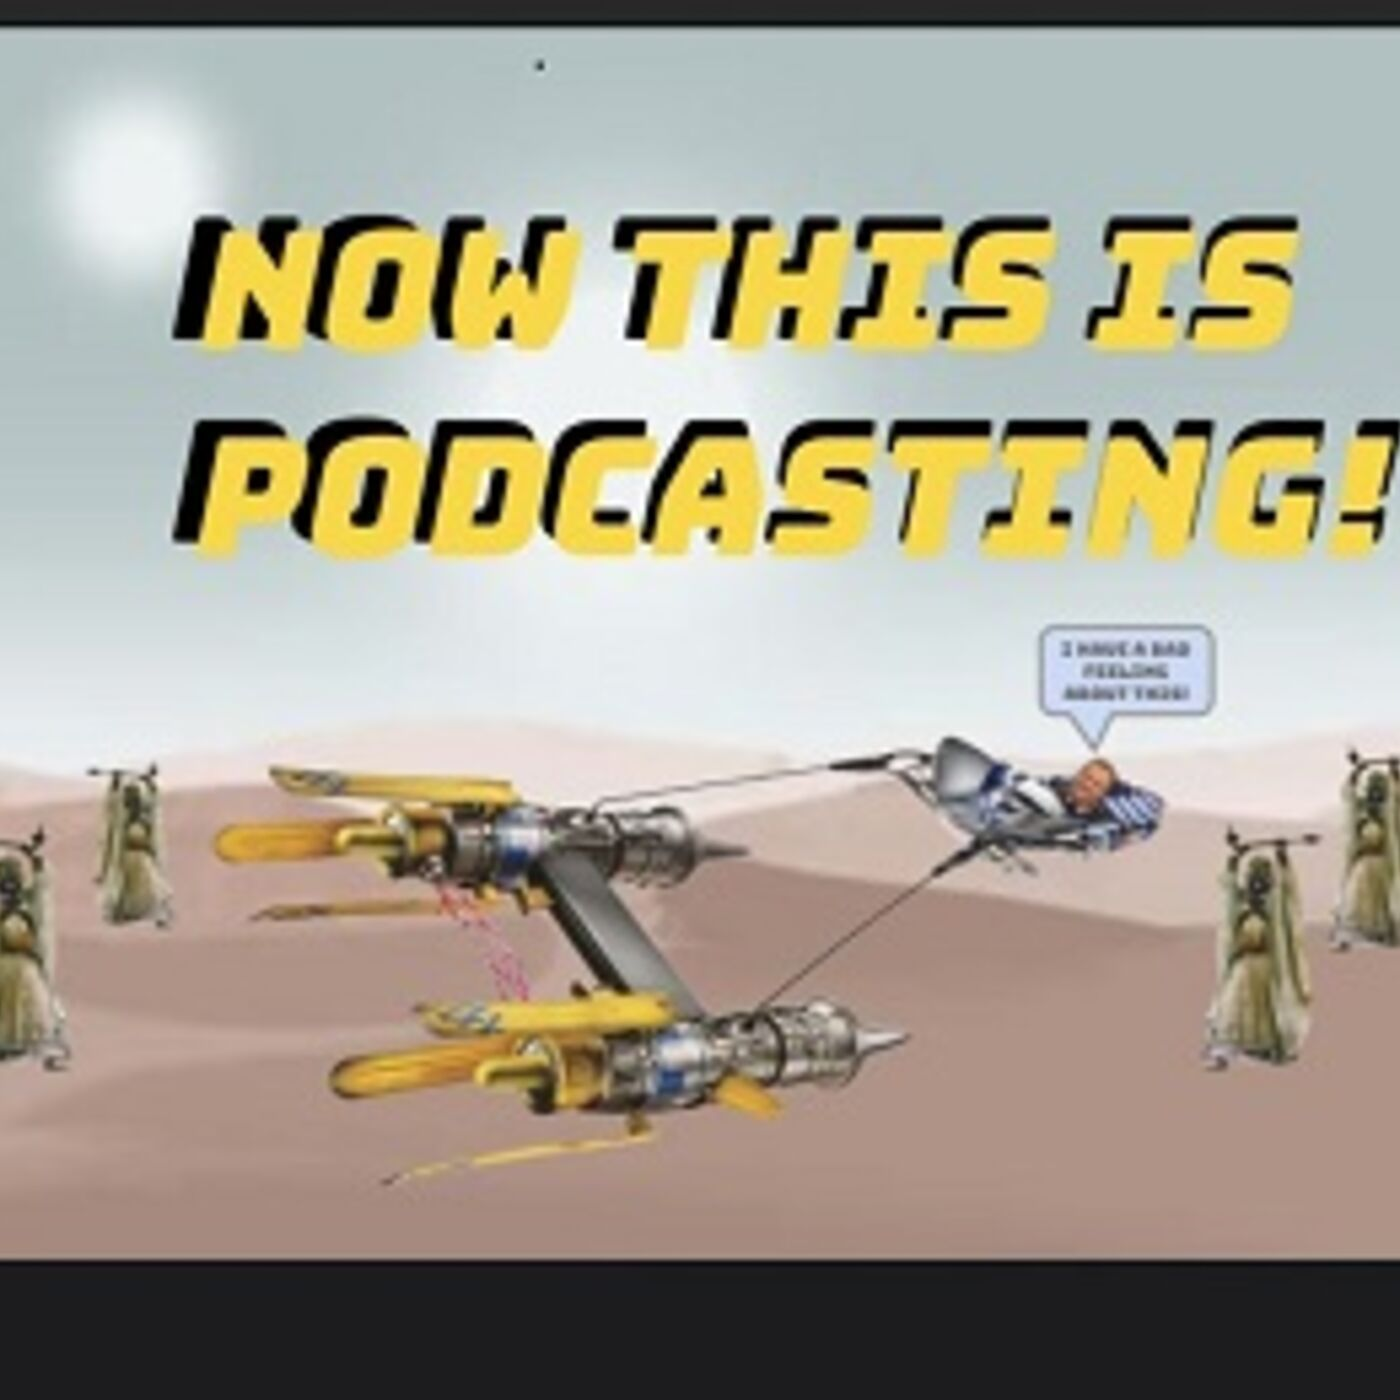 Now THIS Is Podcasting!